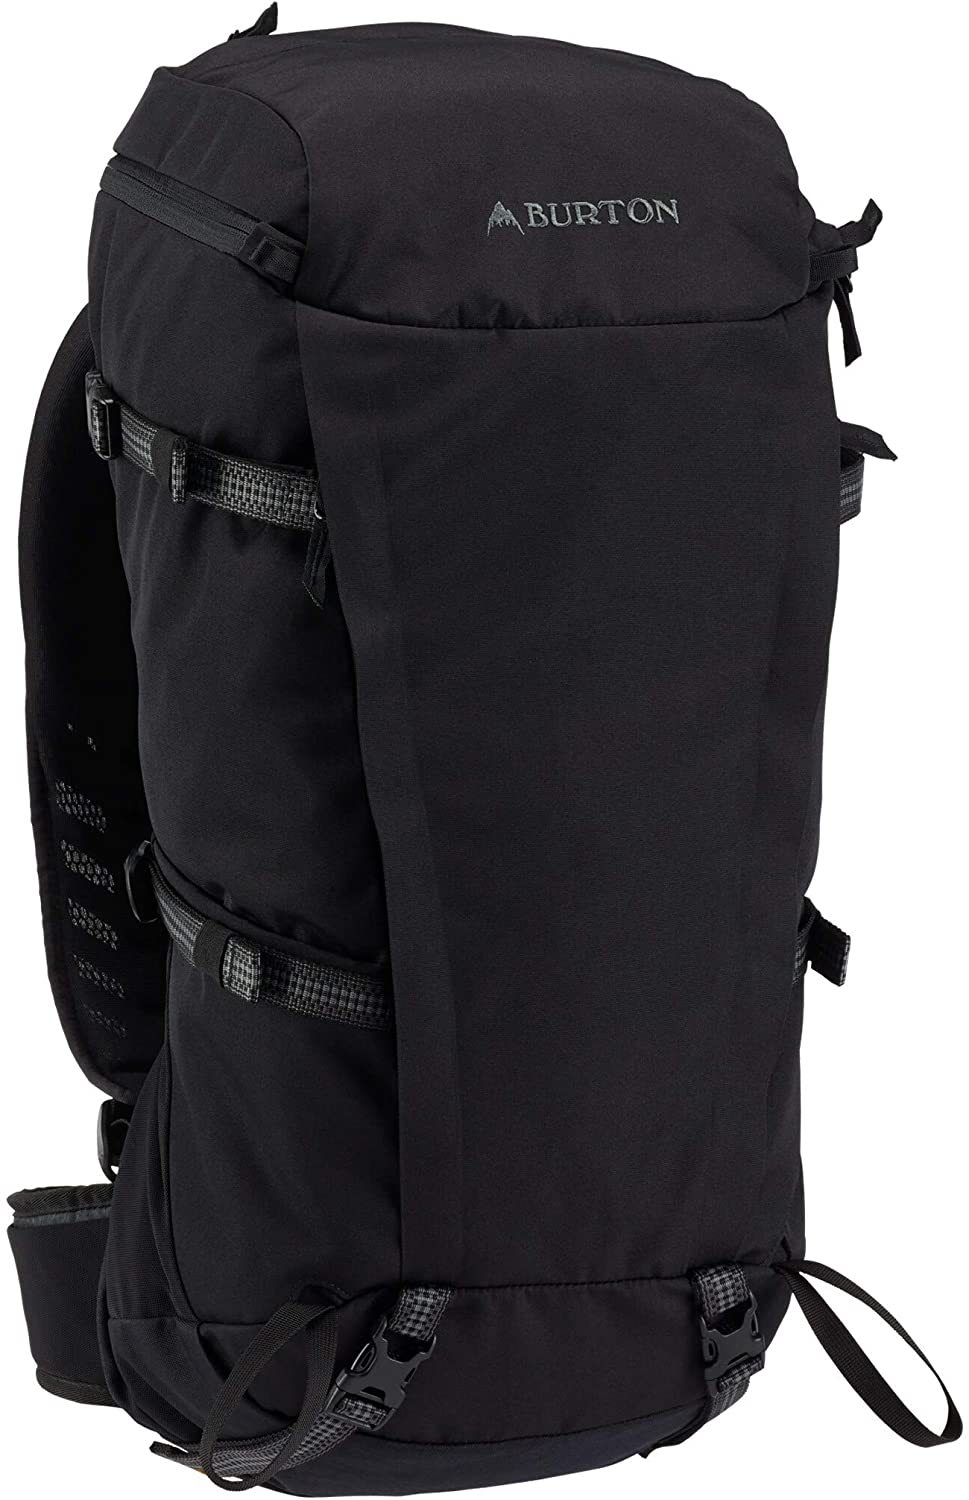 Burton Skyward 25L Tactical Hiking/Camping/Travel Backpack with Gear/Tool Carries and Hydration Sleeve